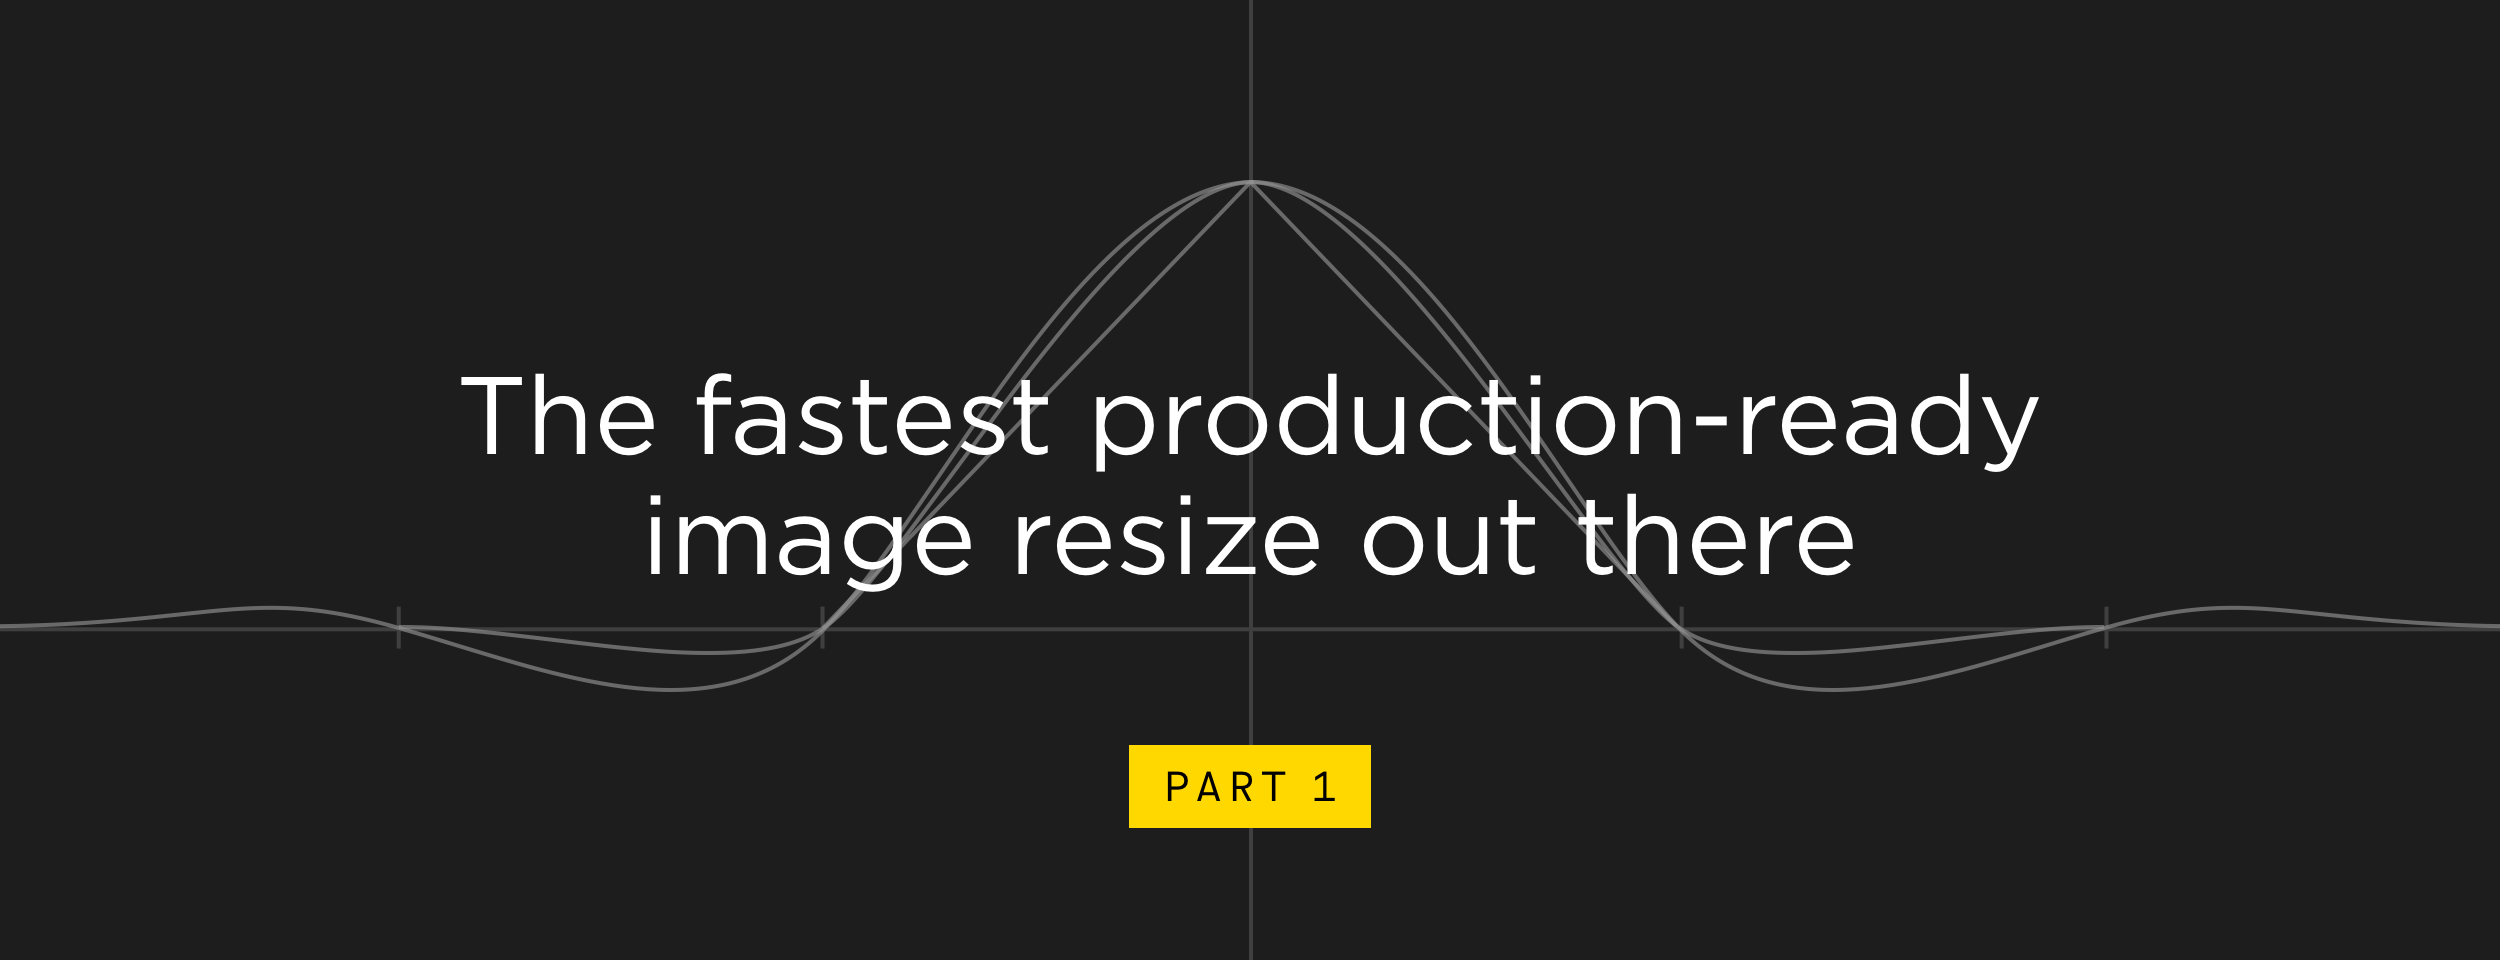 The fastest production-ready image resize out there, part 1: general